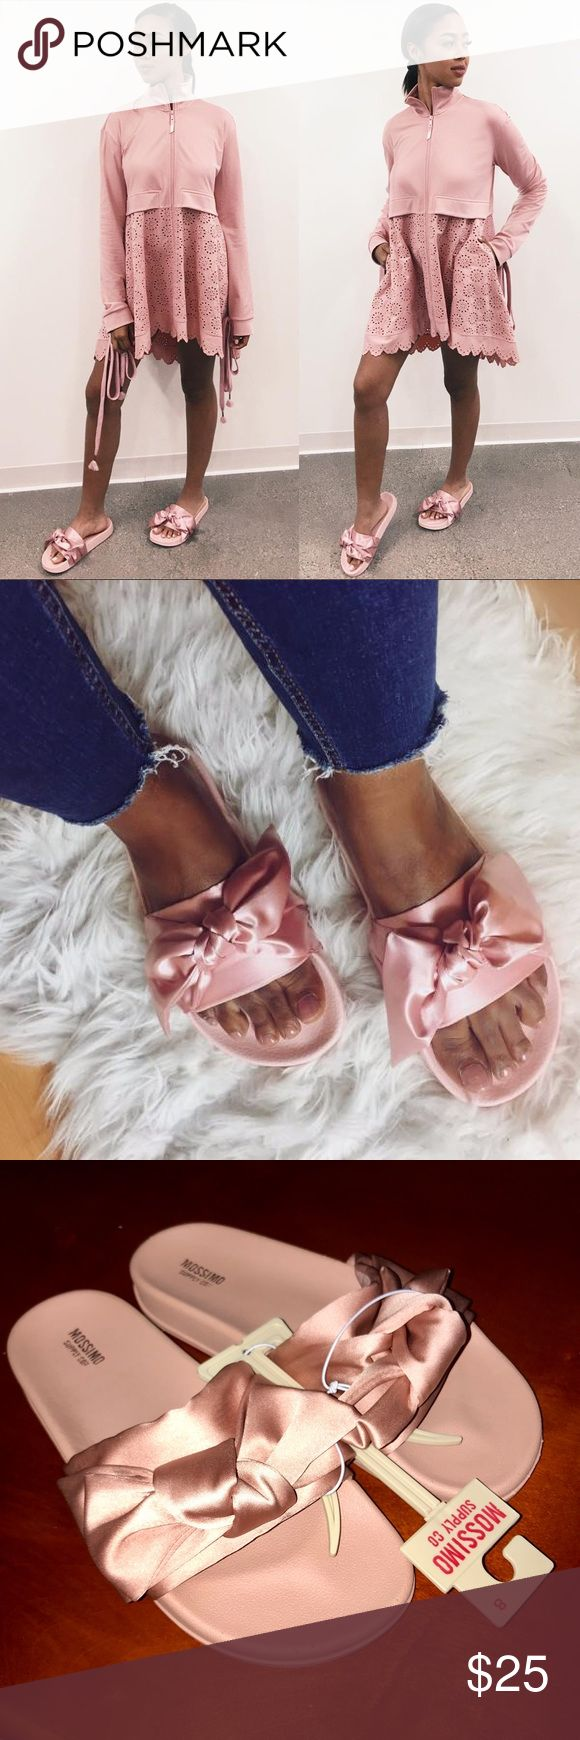 ON SALE • NWT Satin bow pink slides 😍 Brand new satin silk like bow slides in pink they look exactly like the Rihanna Fenty ones. Price is firm. Bundle to save! Fit like a 7.5 to an 8 in women's. Mossimo Supply Co. Shoes Sandals